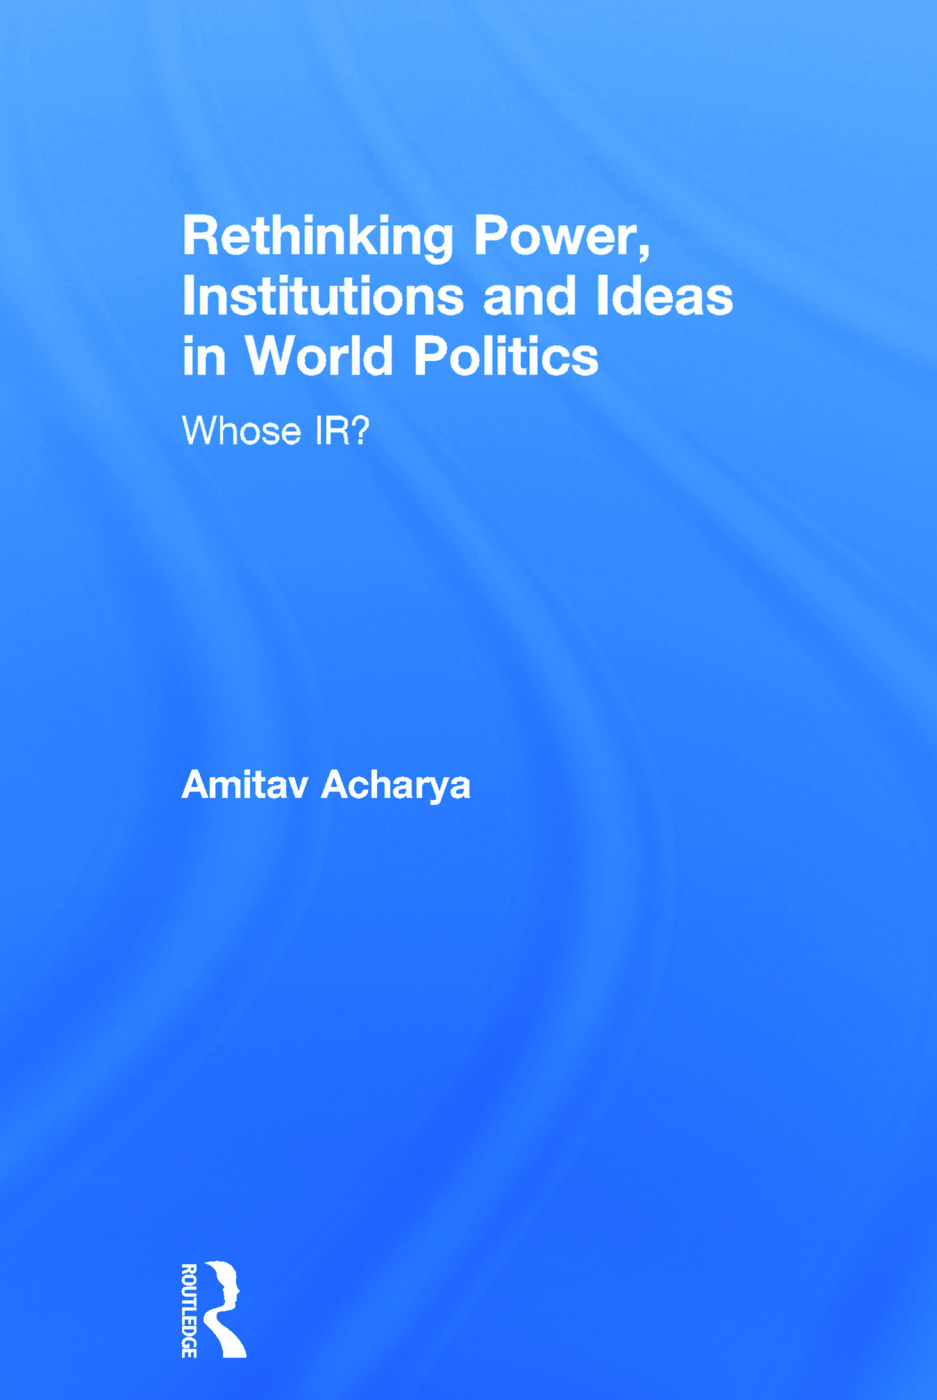 How ideas spread: whose norms matter? Norm localization and institutional change in Asian regionalism